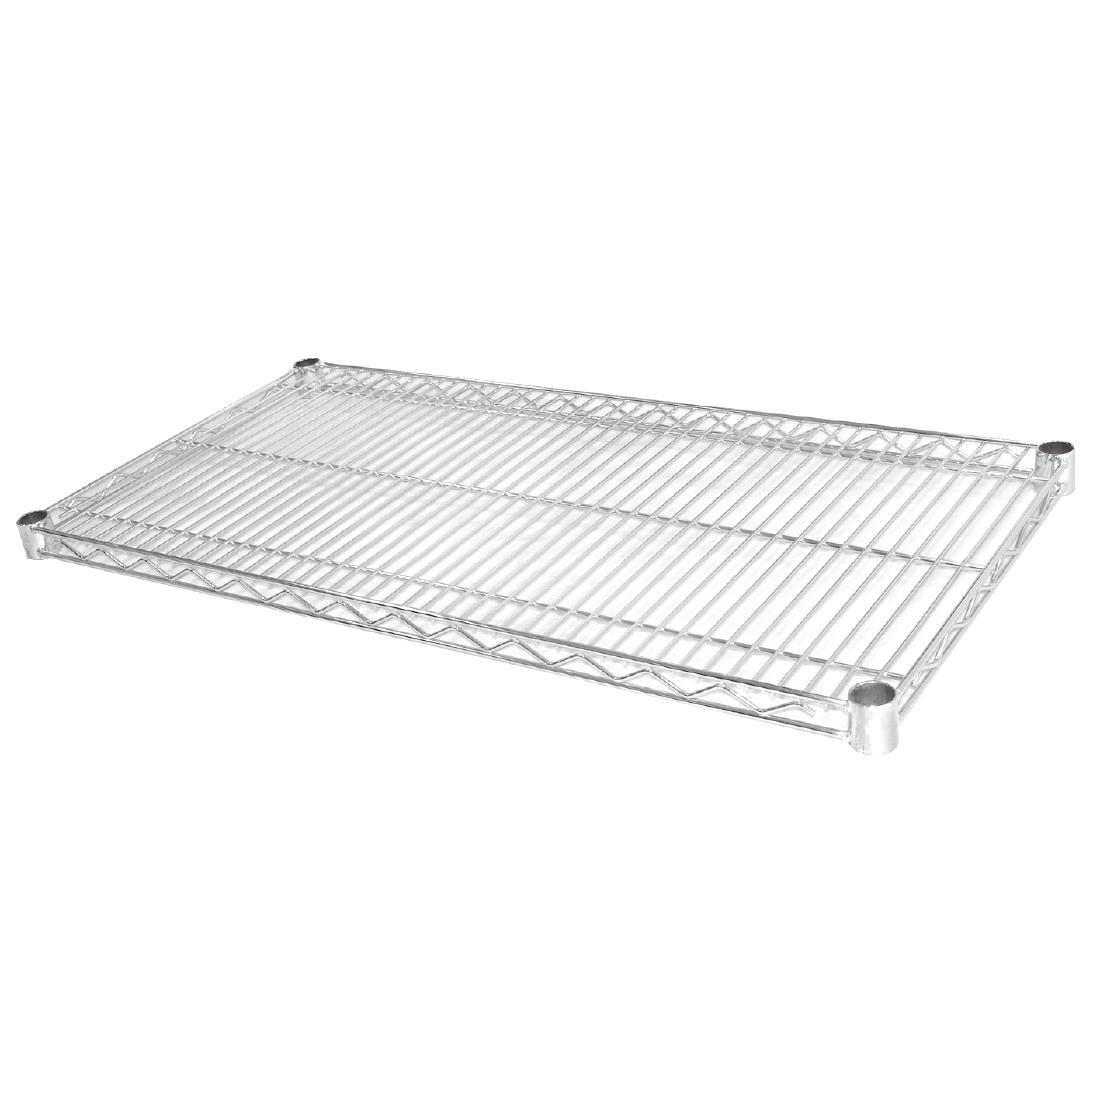 Vogue Chrome Wire Shelves 915x457mm Pack of 2 - U889